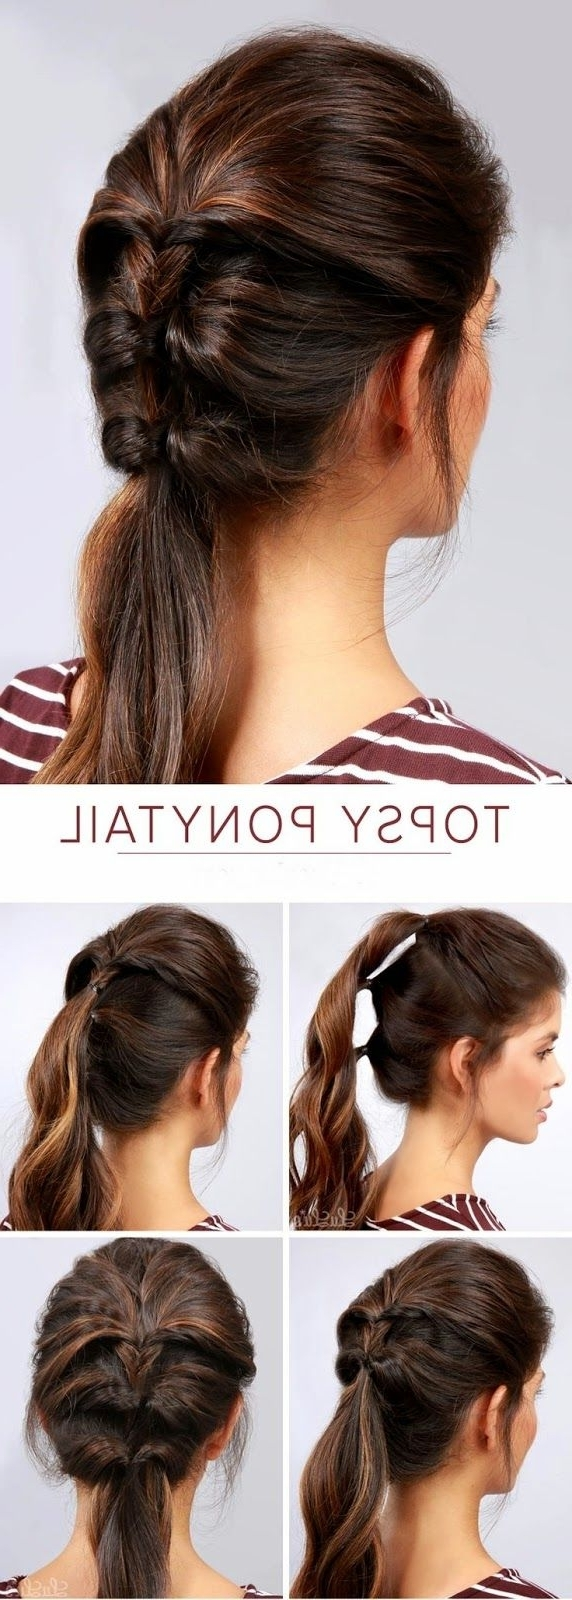 Easy Hairstyle, Hairstyle Ideas (View 4 of 20)